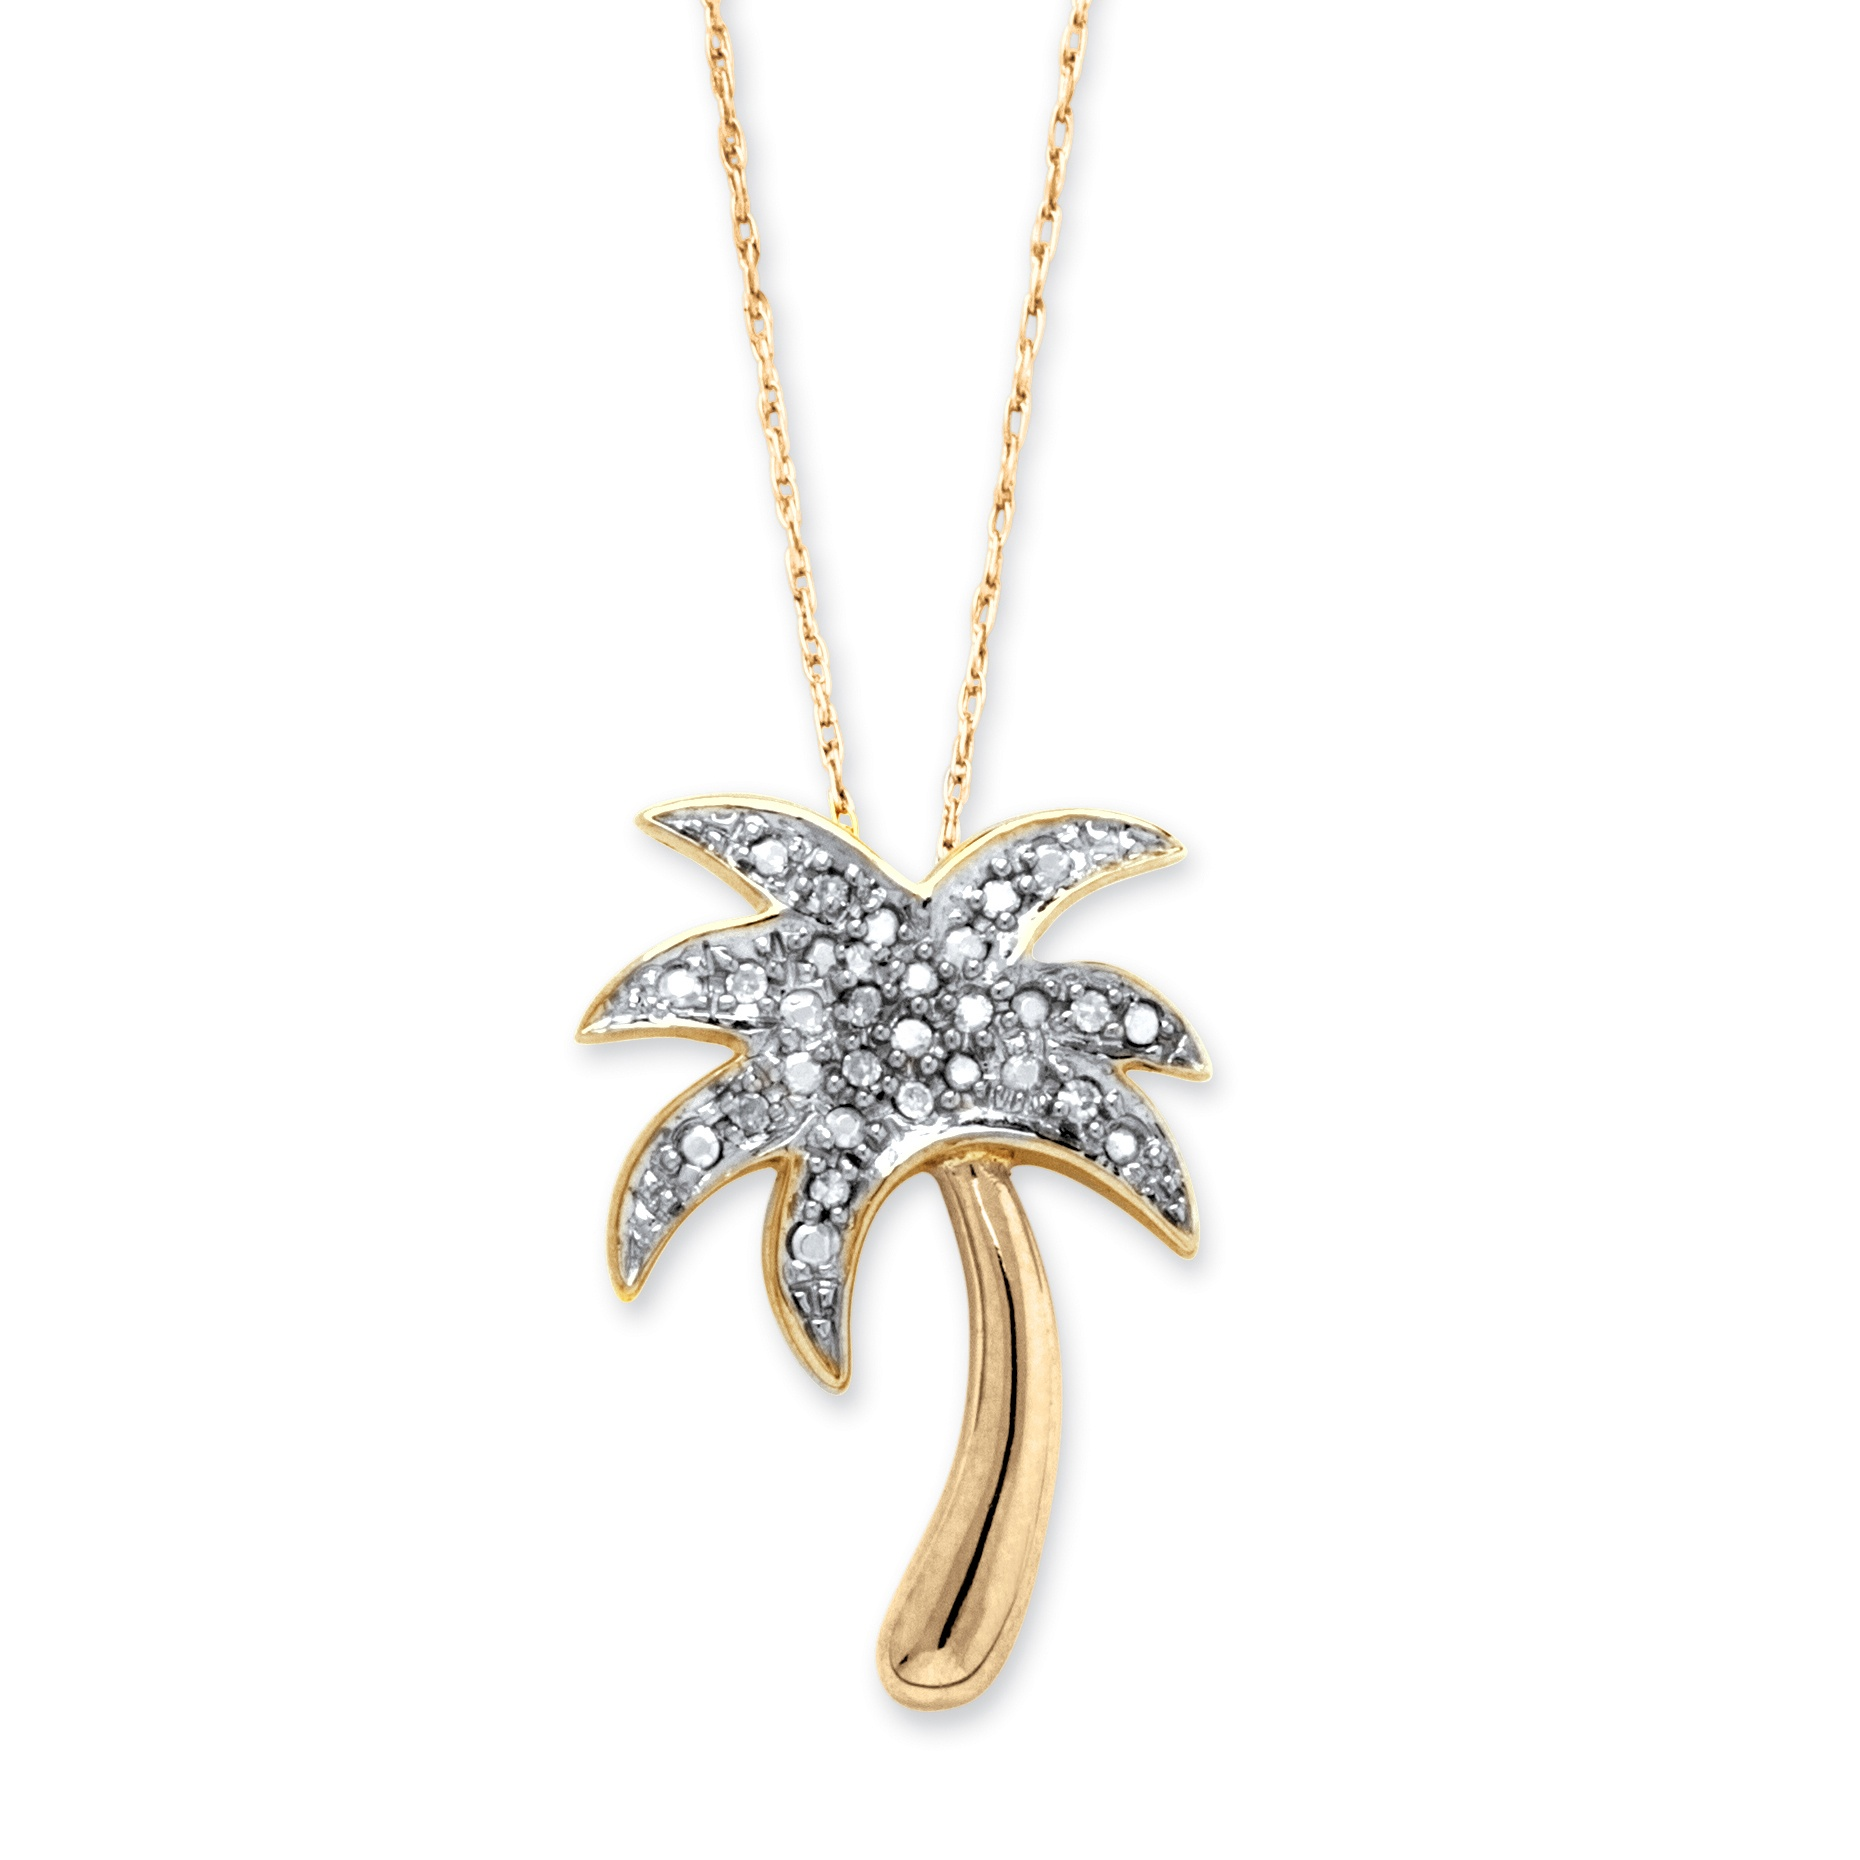 palmtree jewelry accent palm tree pendant necklace in 14k gold 7301